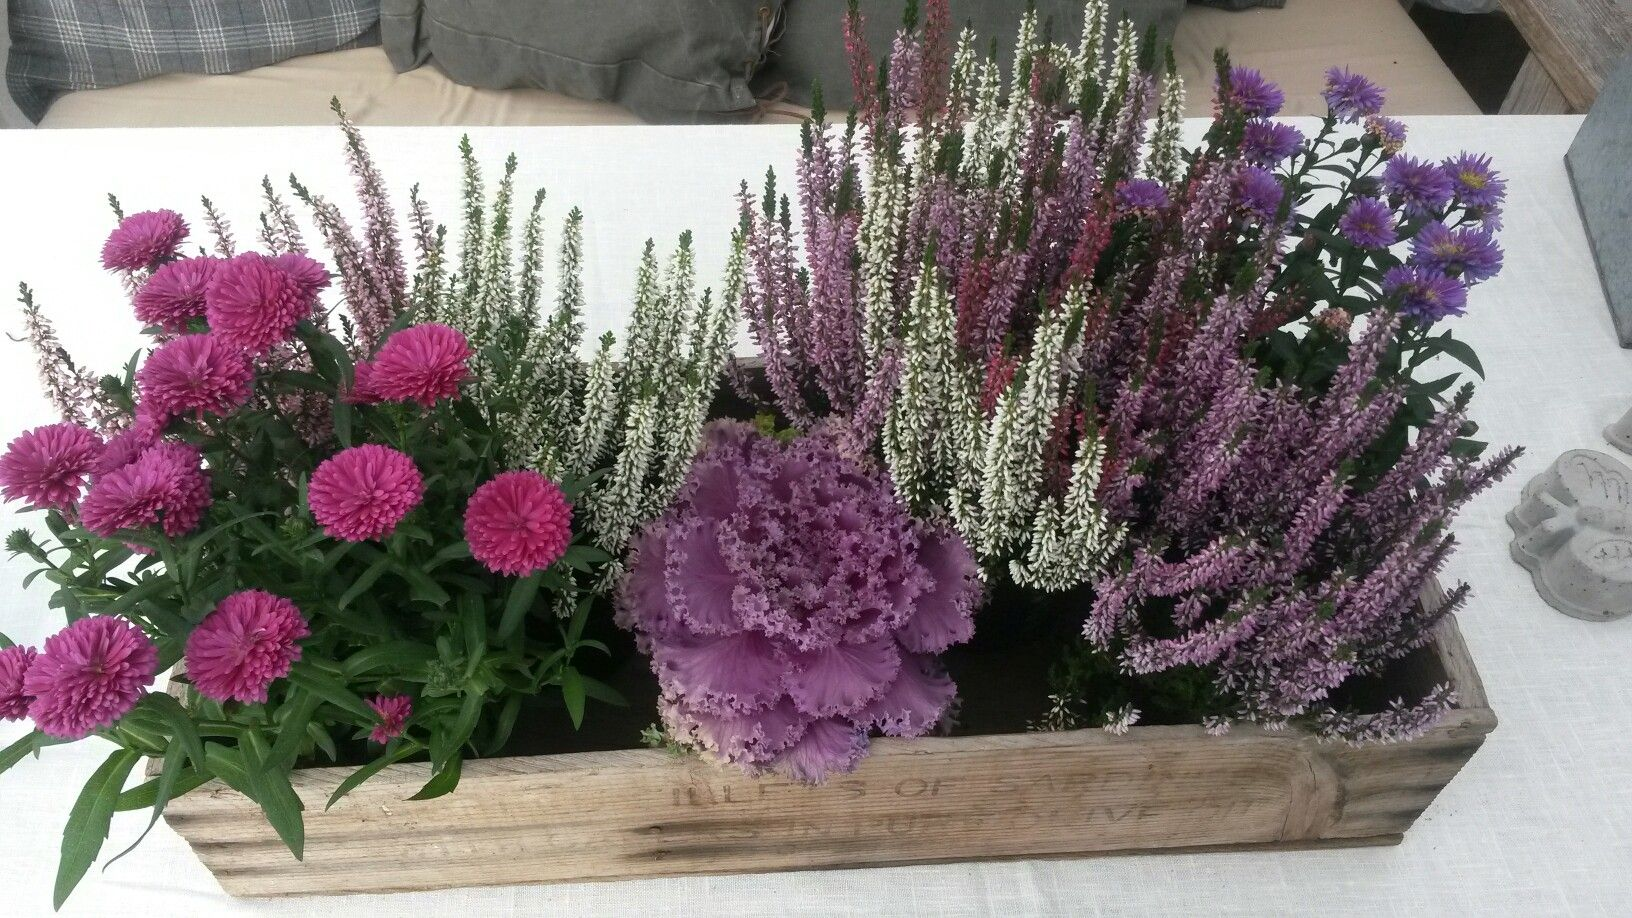 Pin By Gabriela On Utomhus Container Flowers Fall Flowers Flower Pots Outdoor